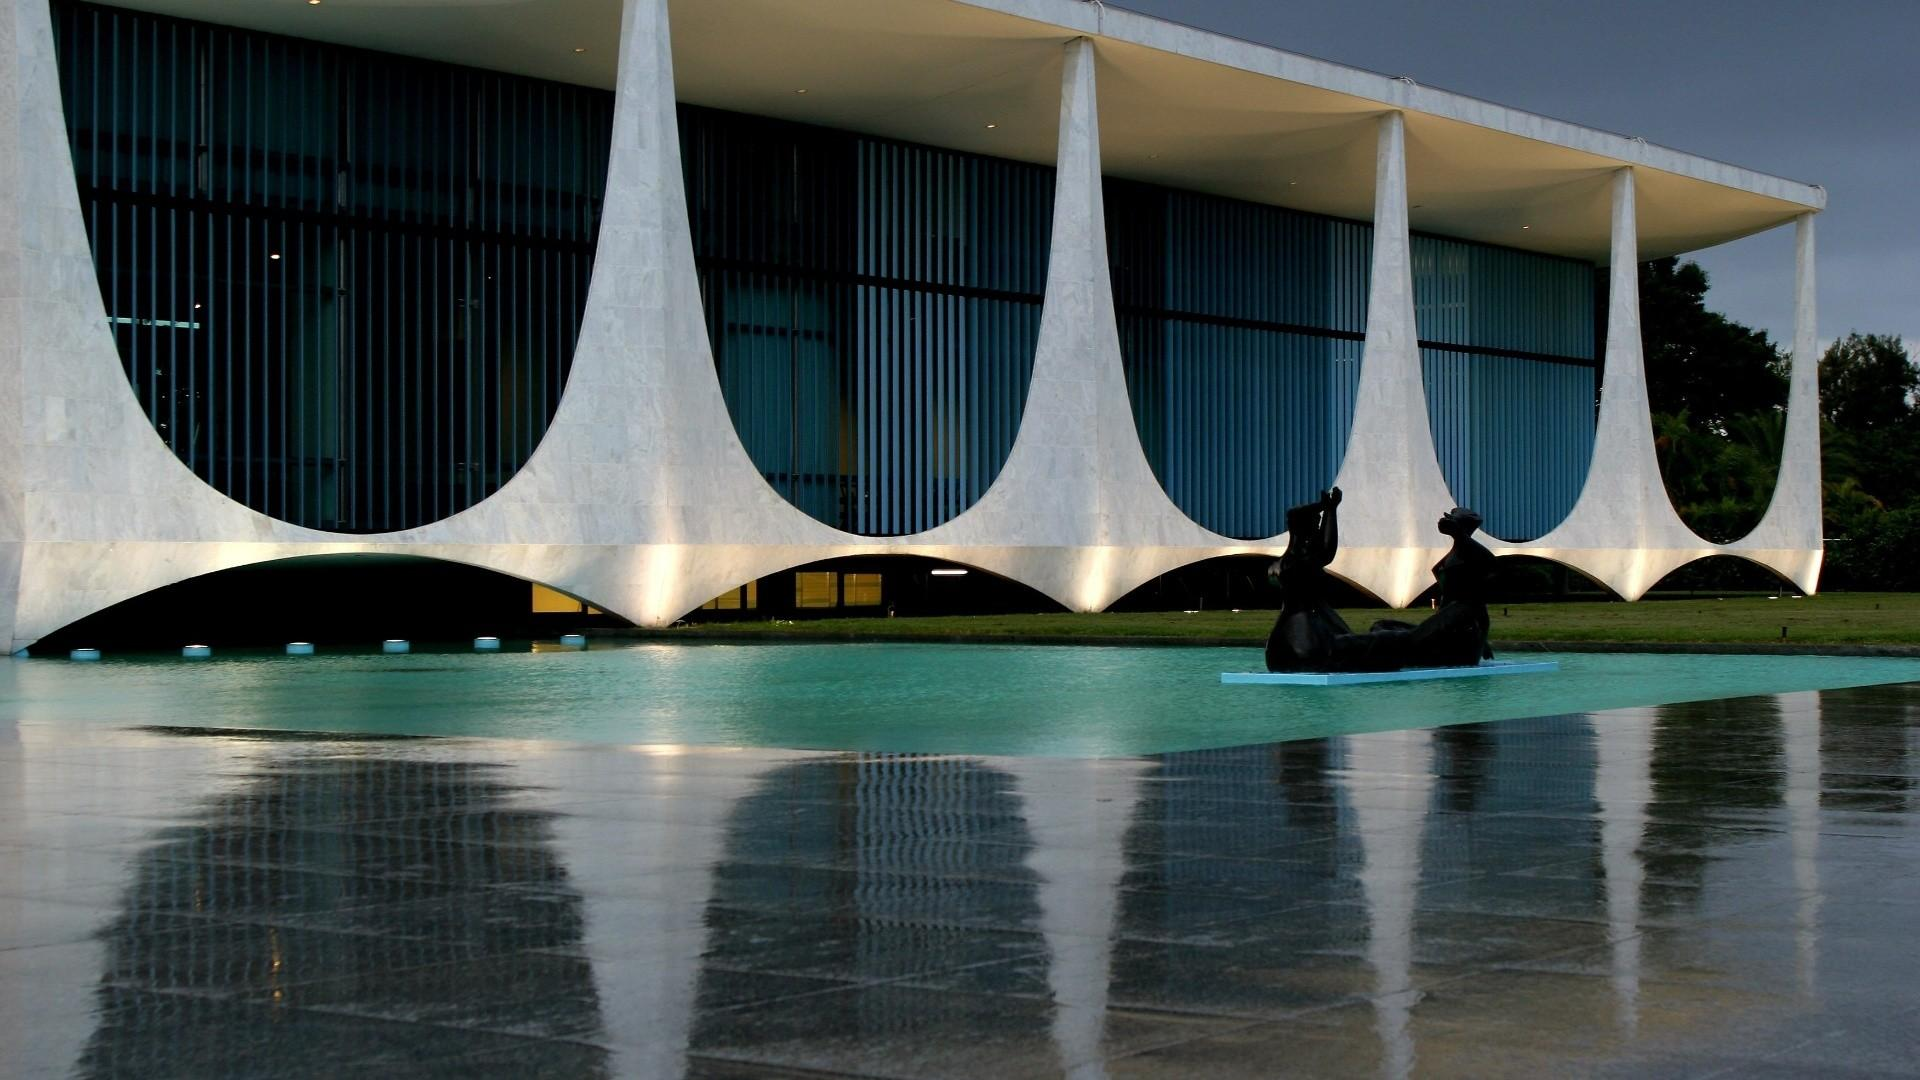 Homage Oscar Niemeyer Architexts Association